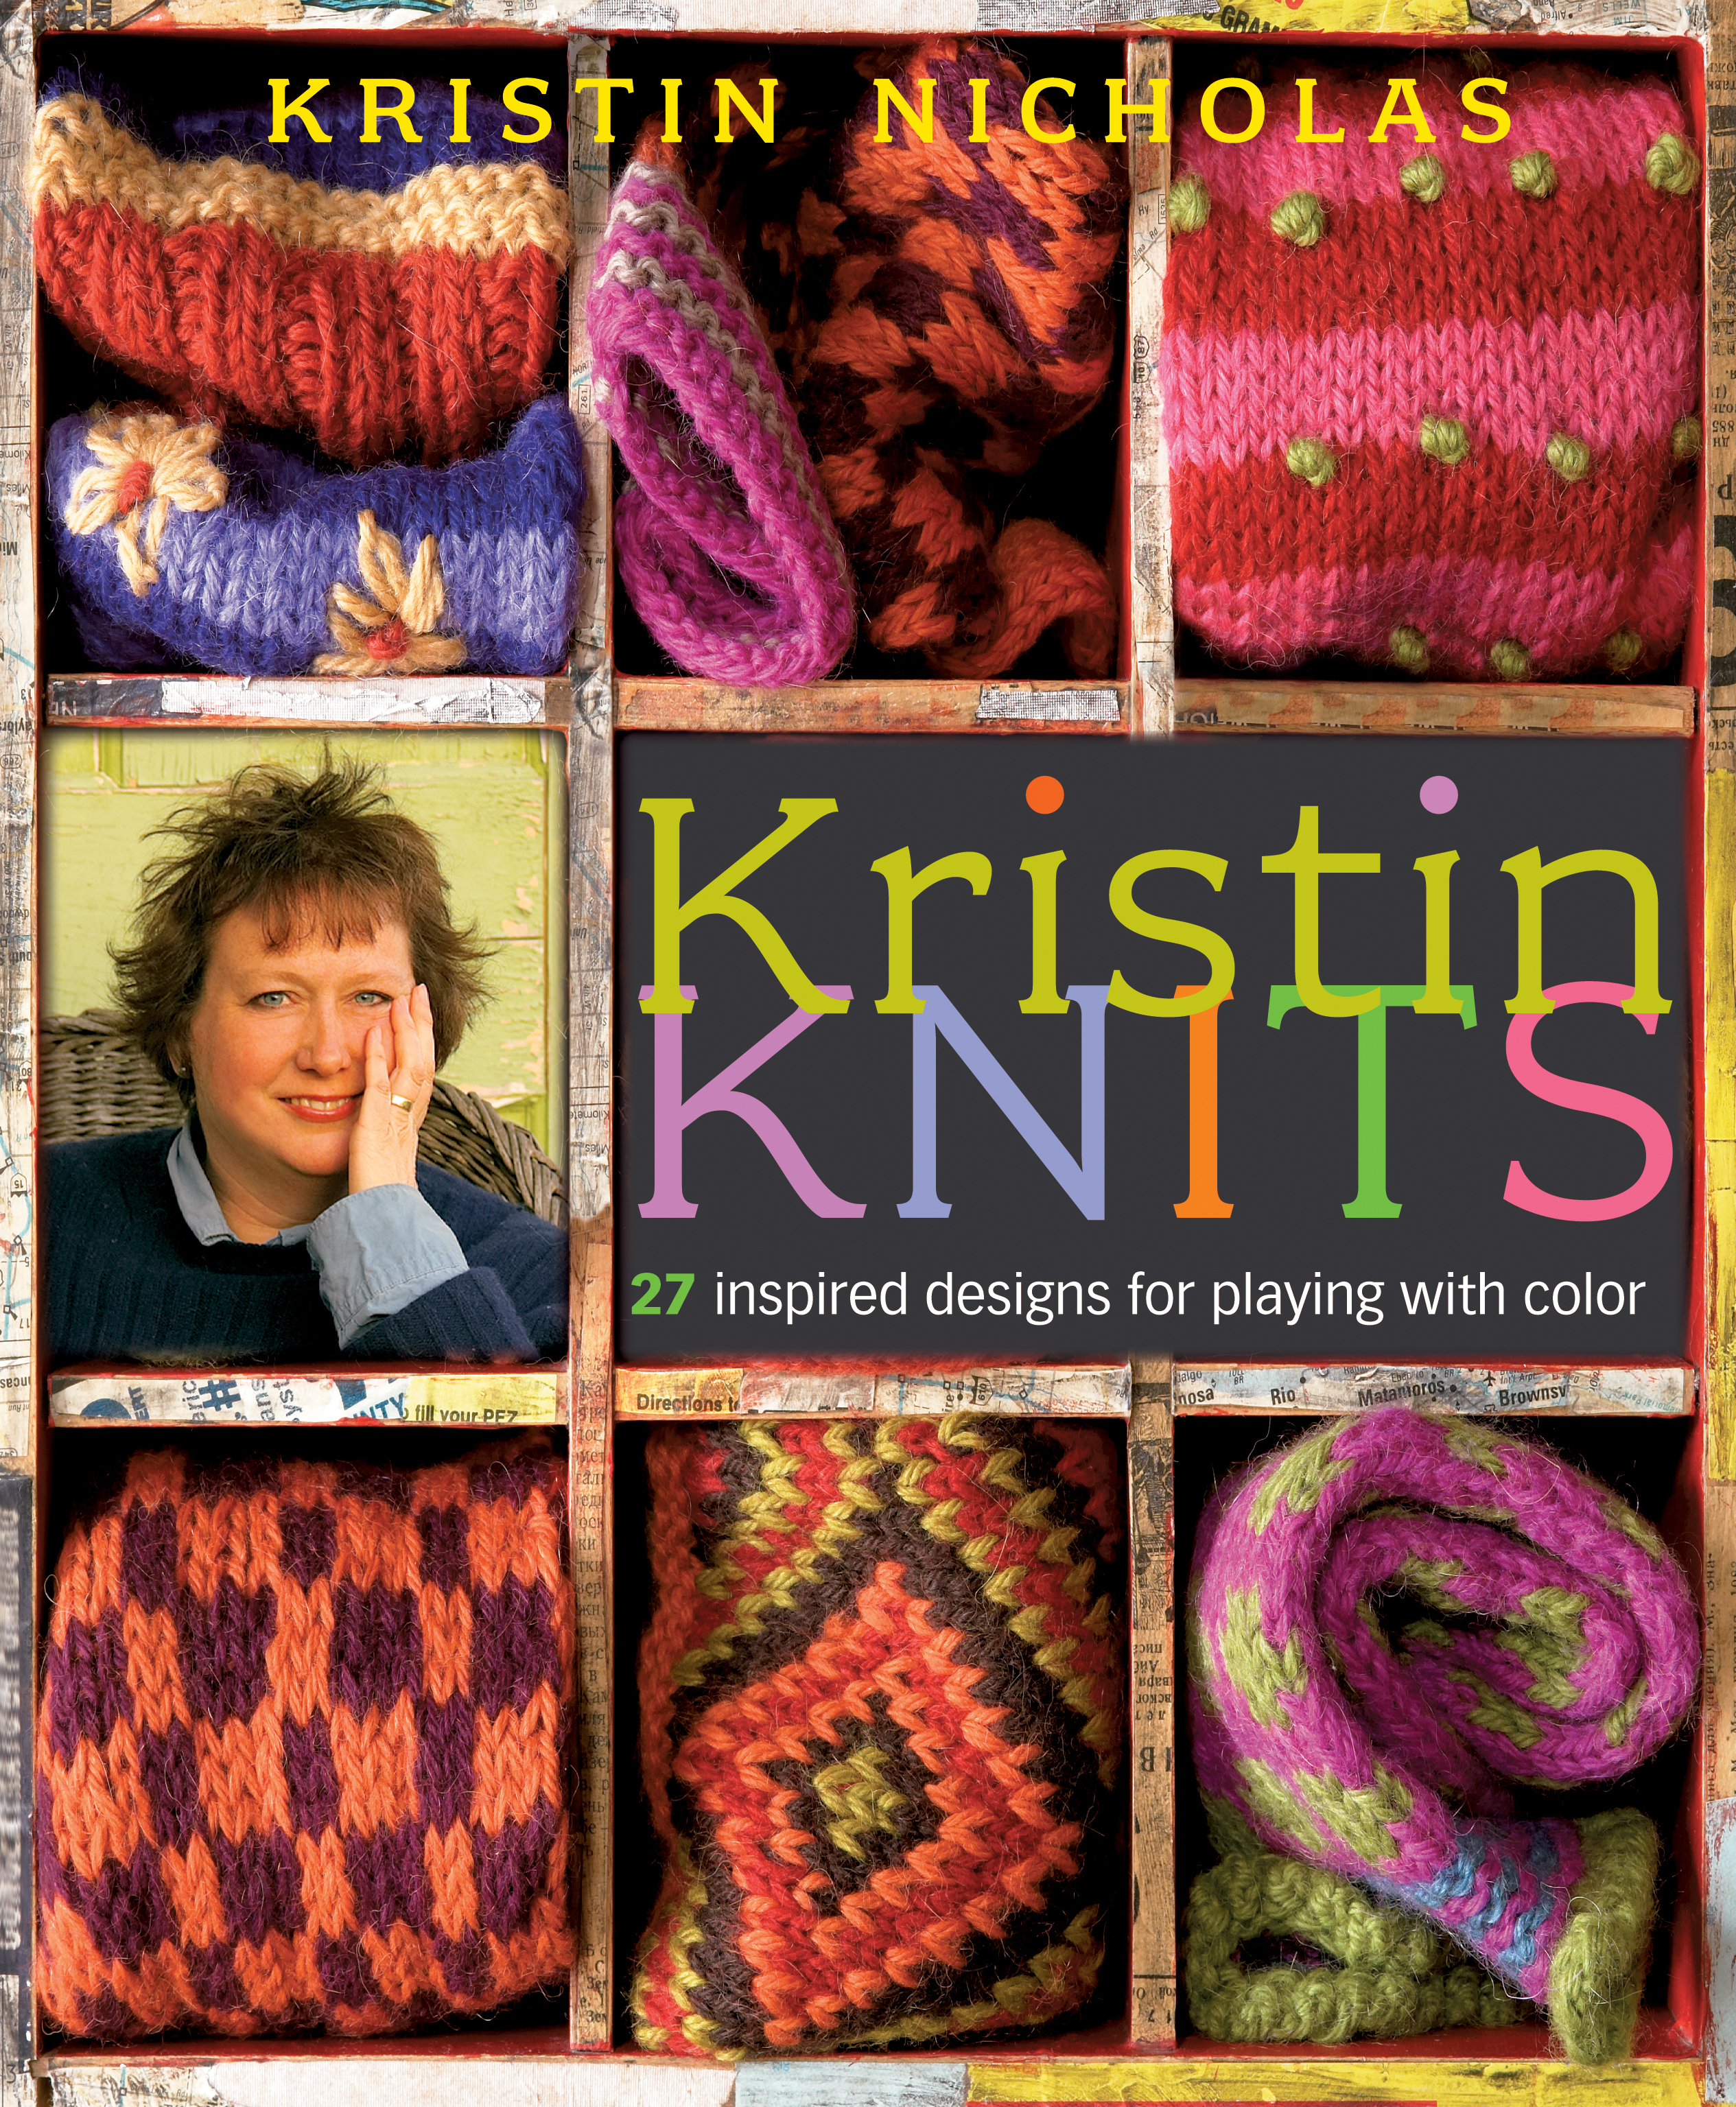 Kristin Knits 27 Inspired Designs for Playing with Color - Kristin Nicholas